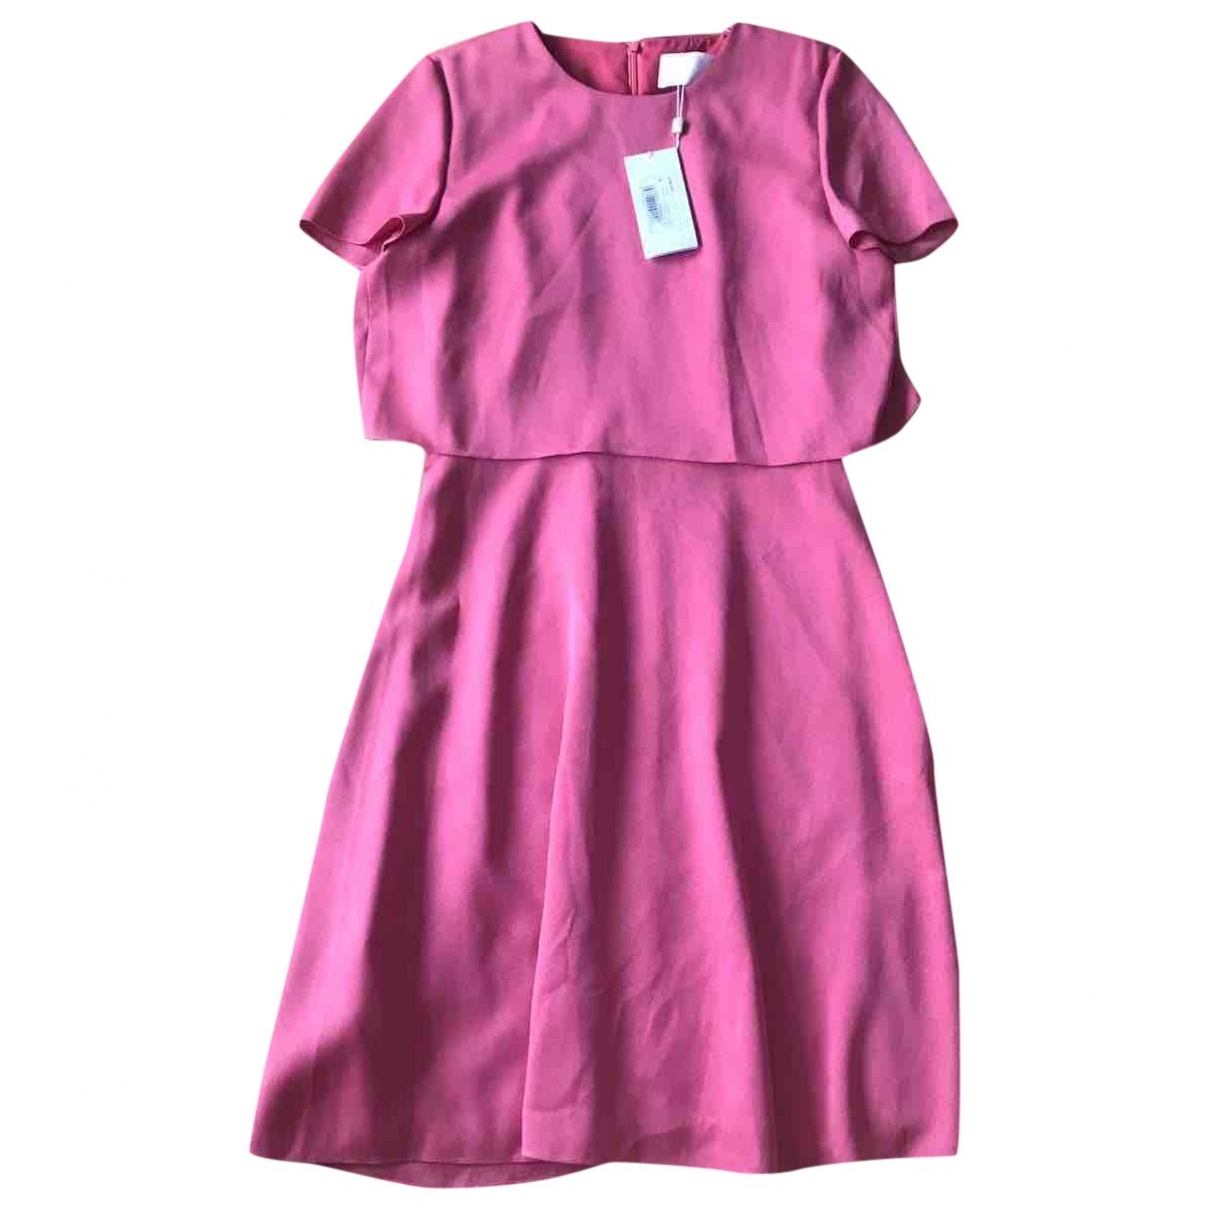 Hugo Boss \N Pink dress for Women 36 FR